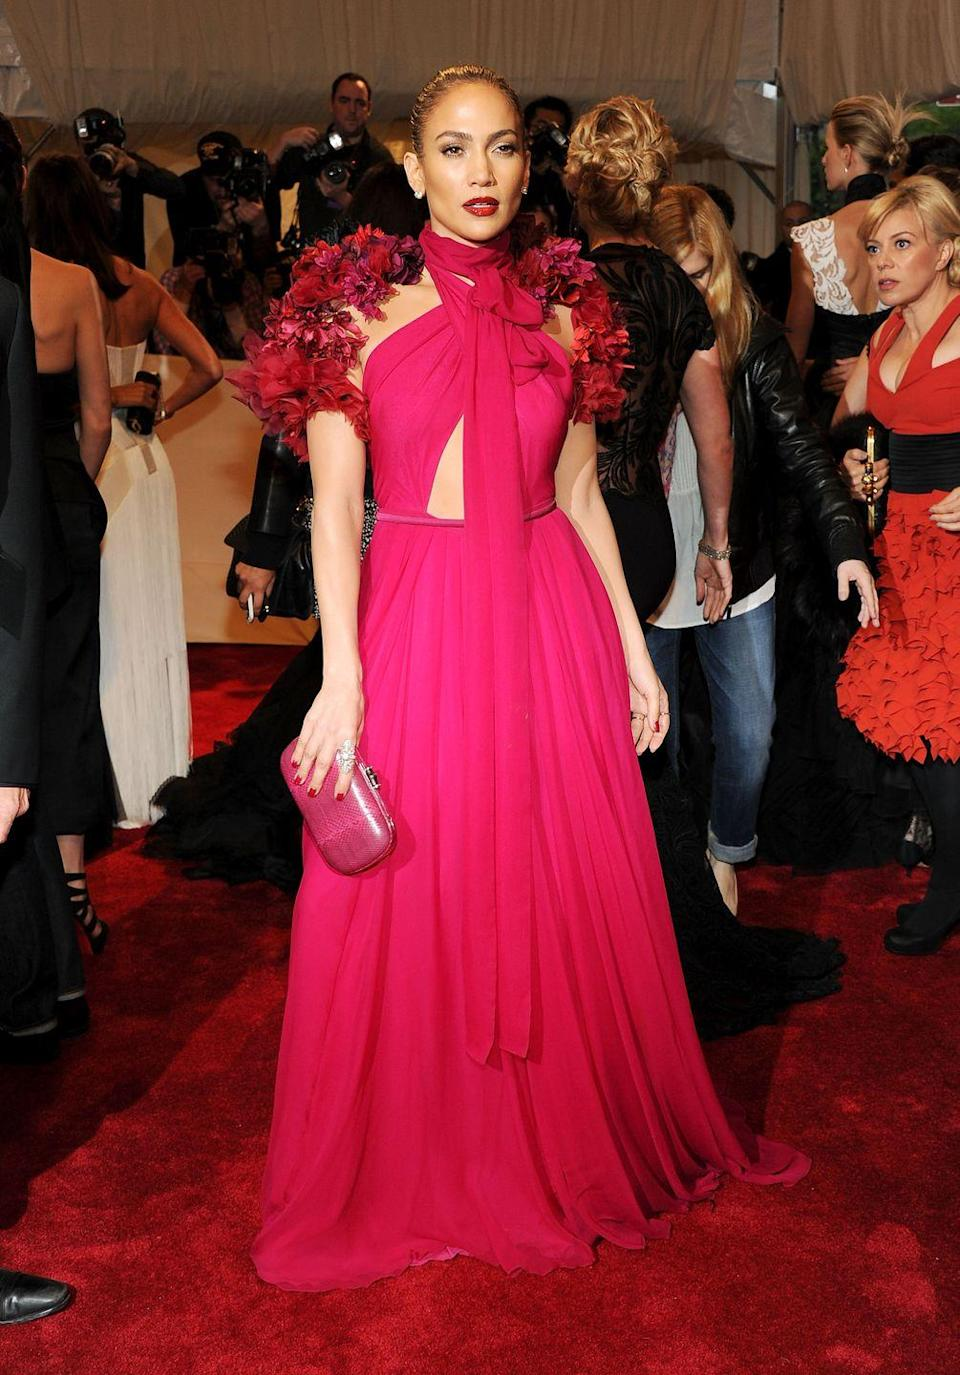 <p>In red Gucci at the 2011 Met Gala honouring Alexander McQueen.</p>